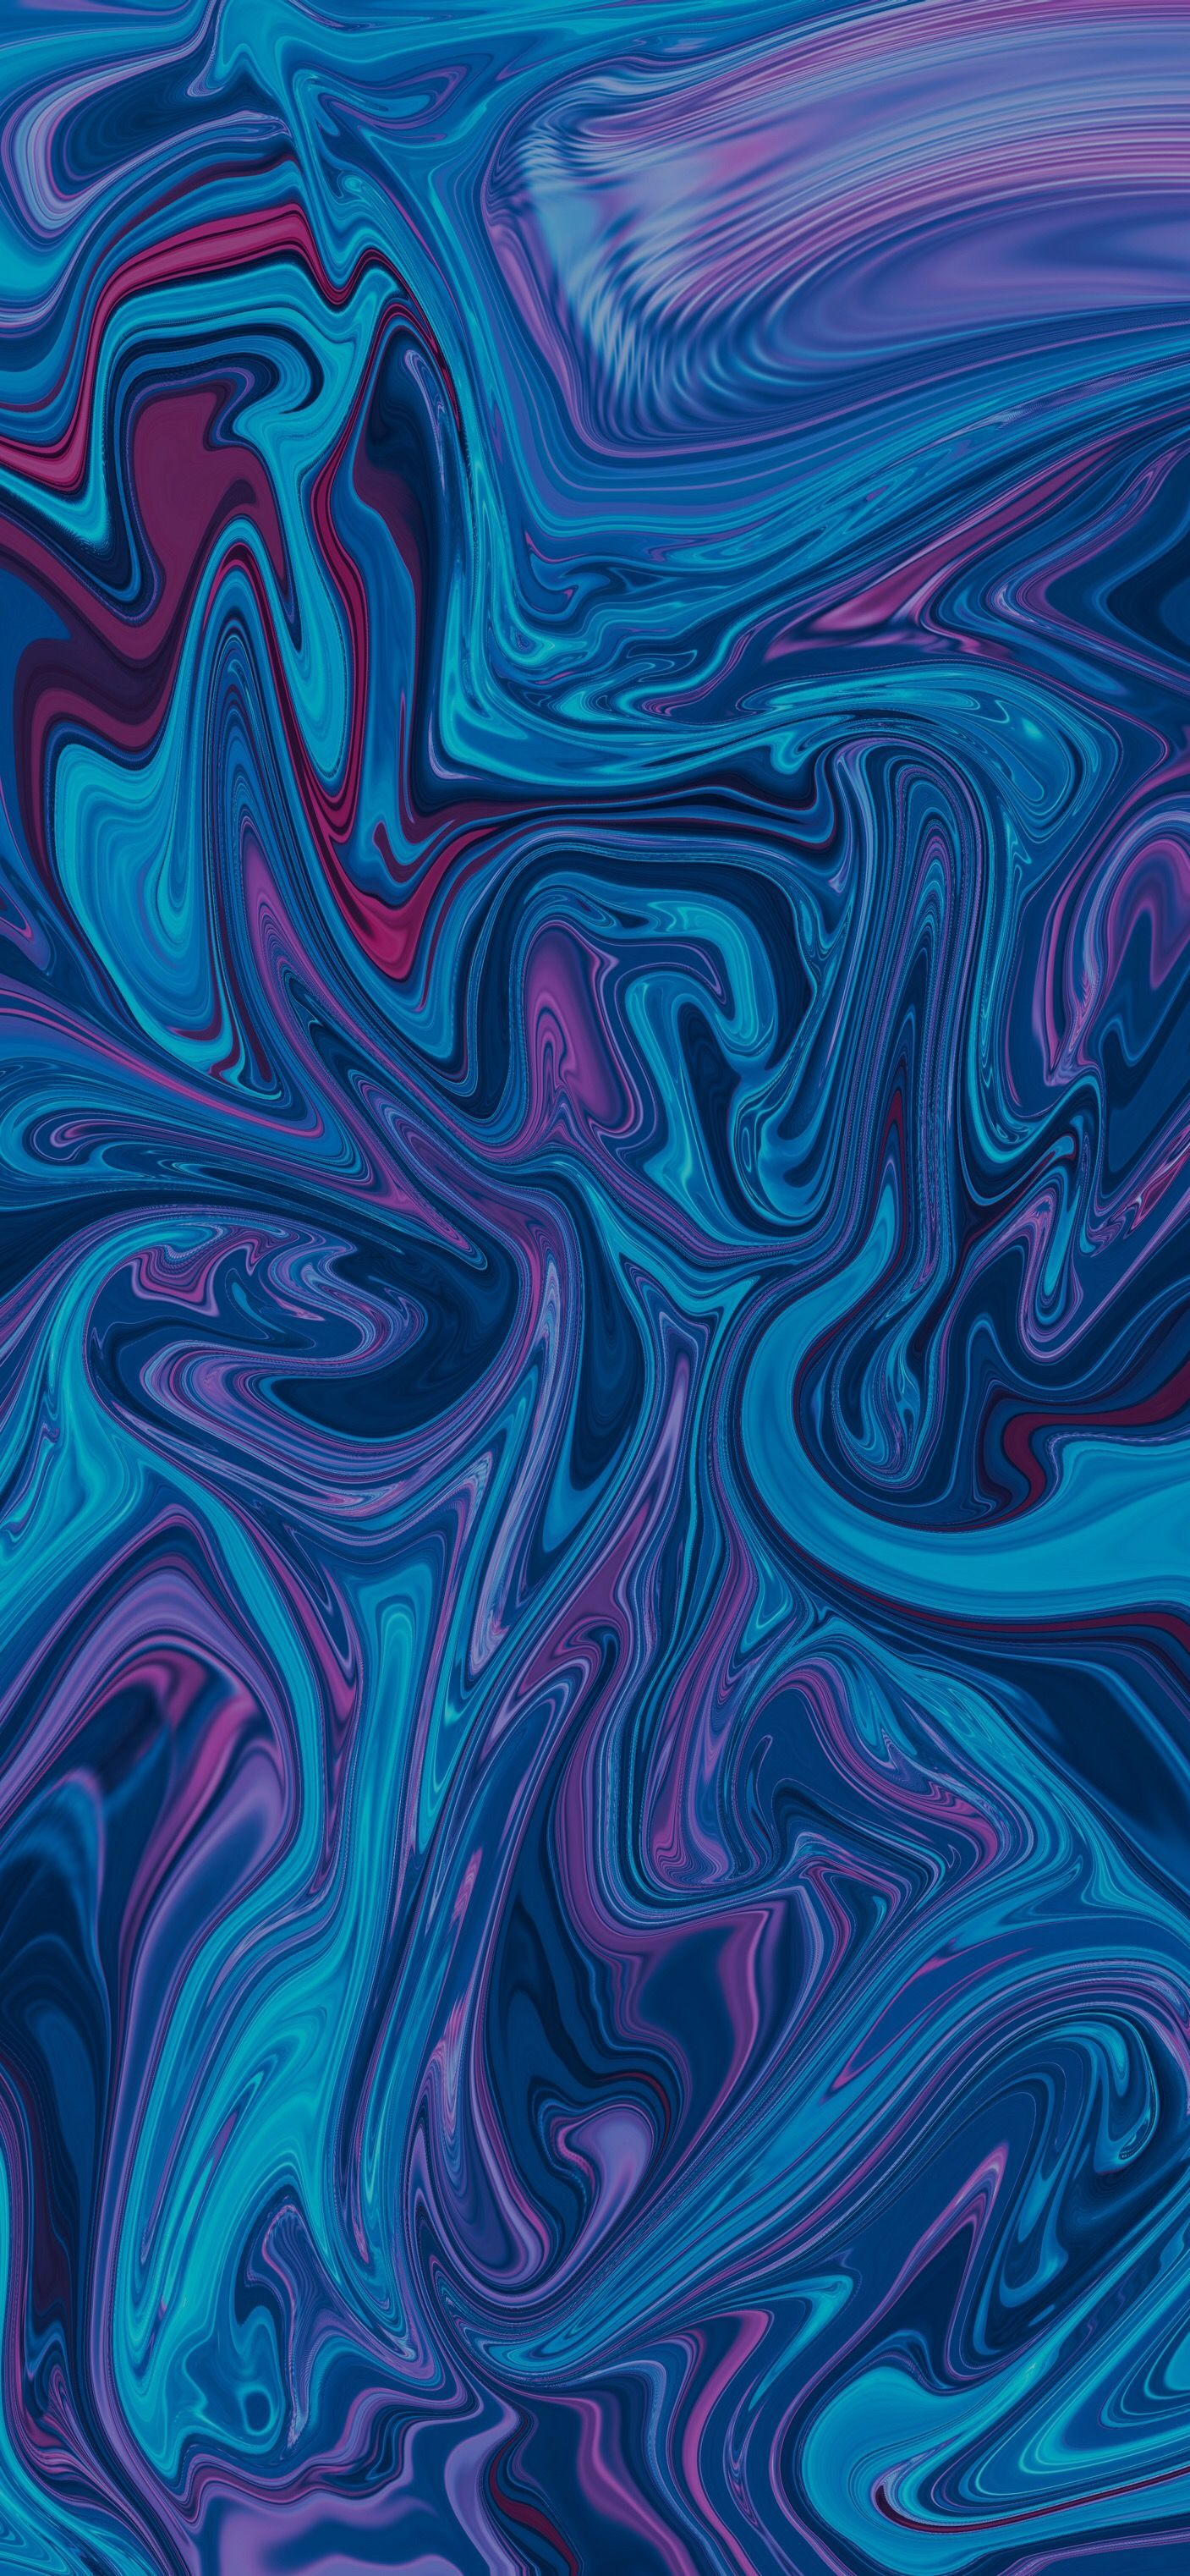 #abstract #abstractart #liquid #lines #color #hdwallpaper #ios13 #illustrator #artwork #artpop #iphonexs #ios13wallpaper #abstract #abstractart #liquid #lines #color #hdwallpaper #ios13 #illustrator #artwork #artpop #iphonexs #ios13wallpaper